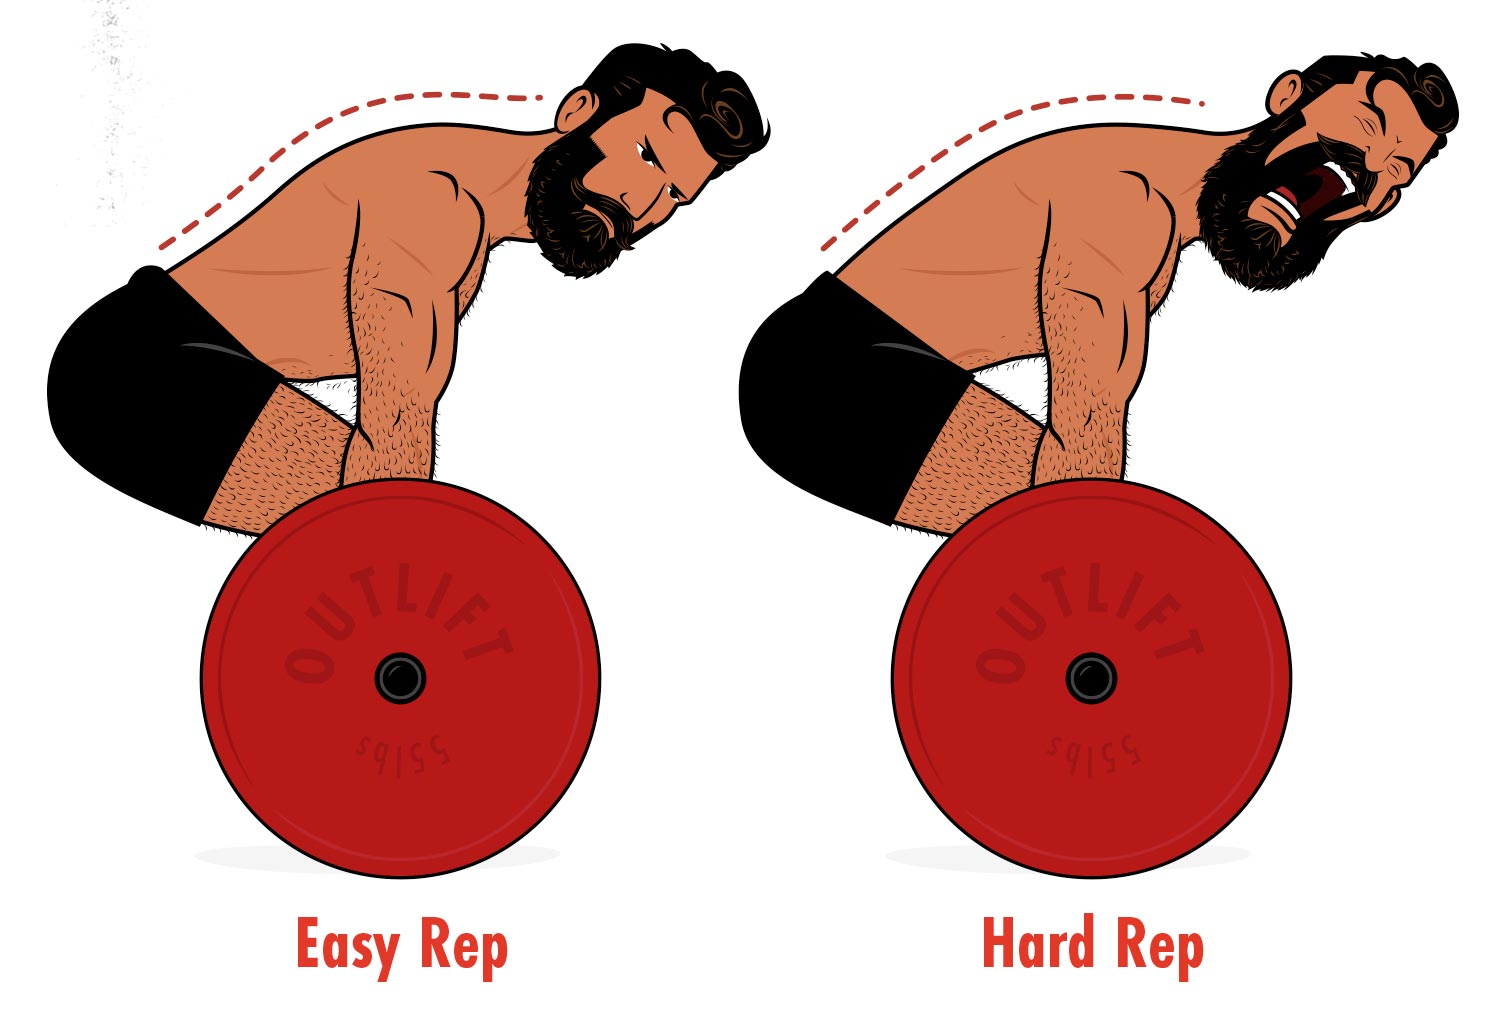 Illustration of a bodybuilder deadlifting with good technique.